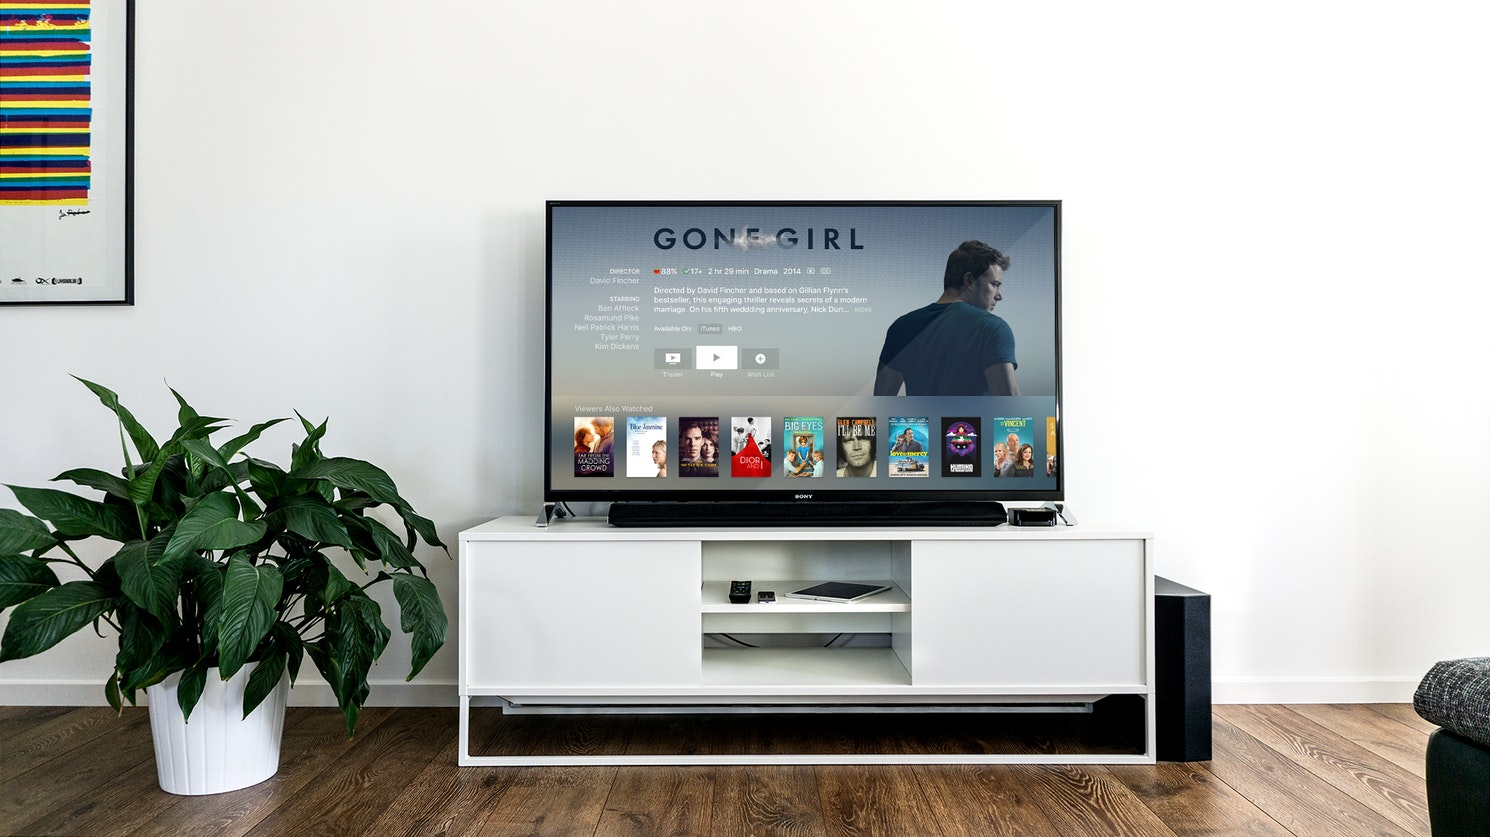 Has On Demand TV Changed the Way We Watch TV?